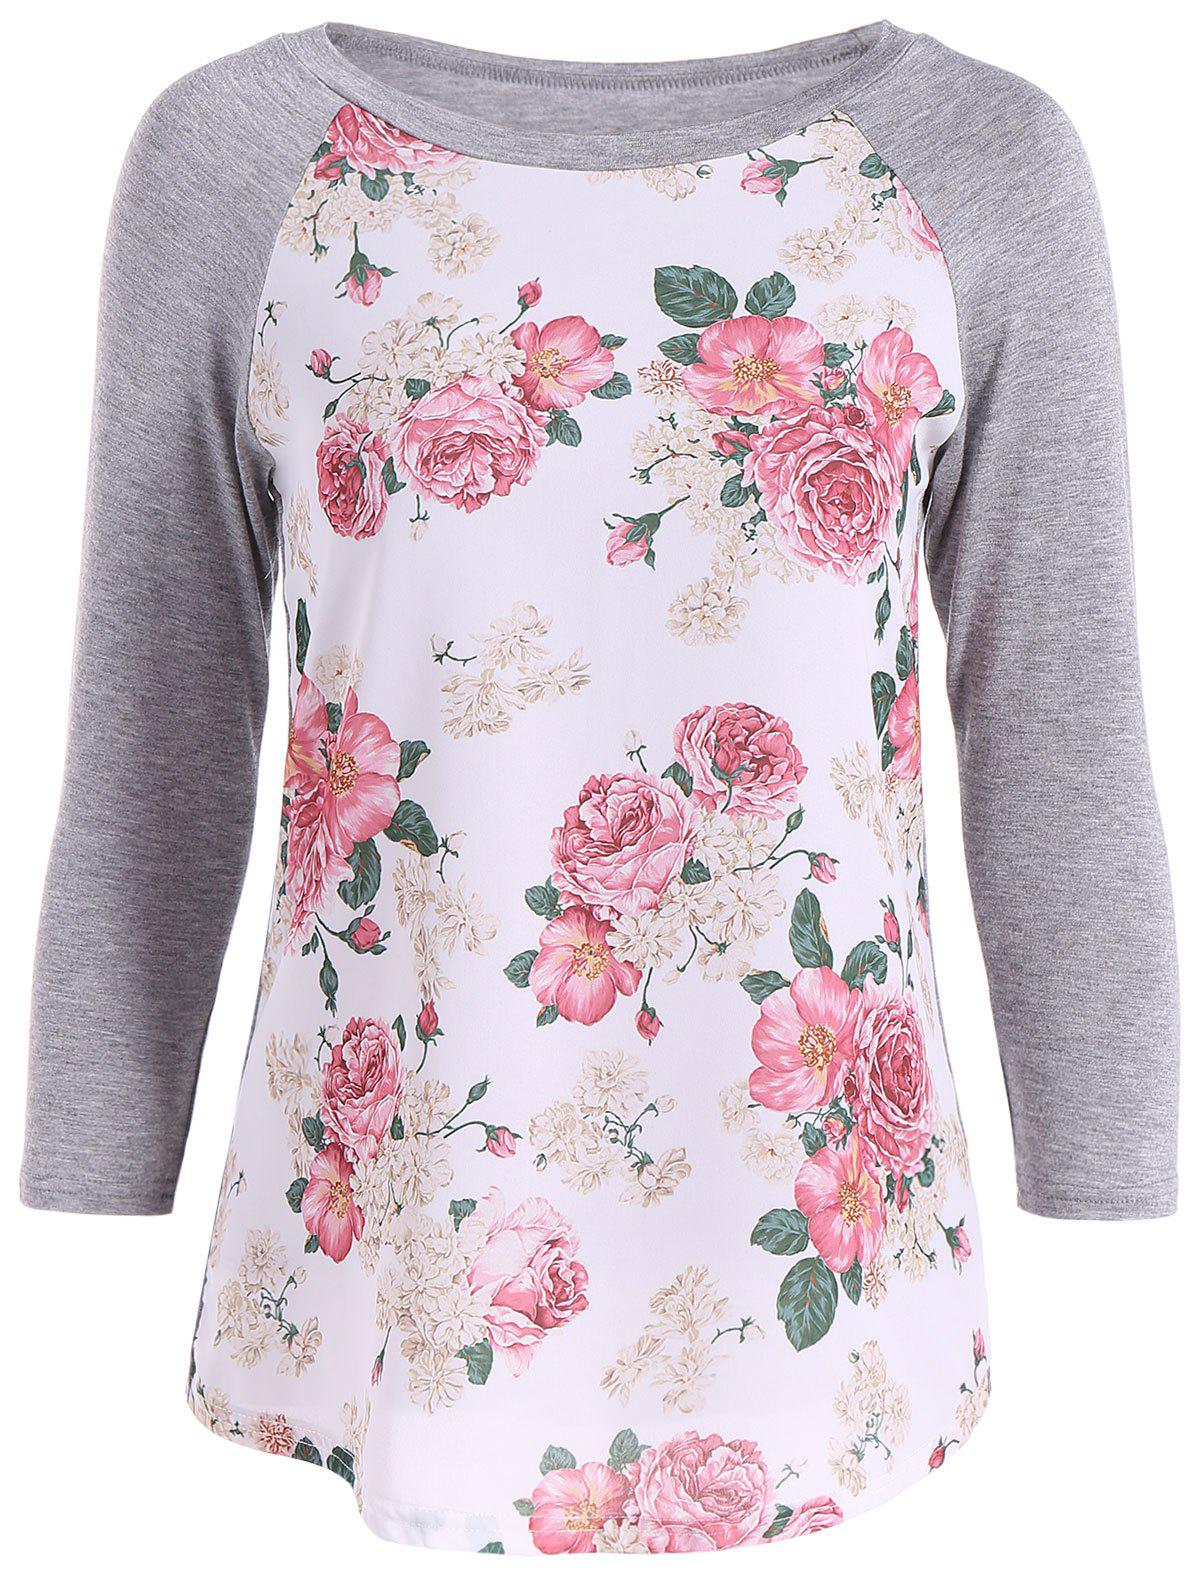 3D Floral Raglan Sleeve Tee от Rosegal.com INT